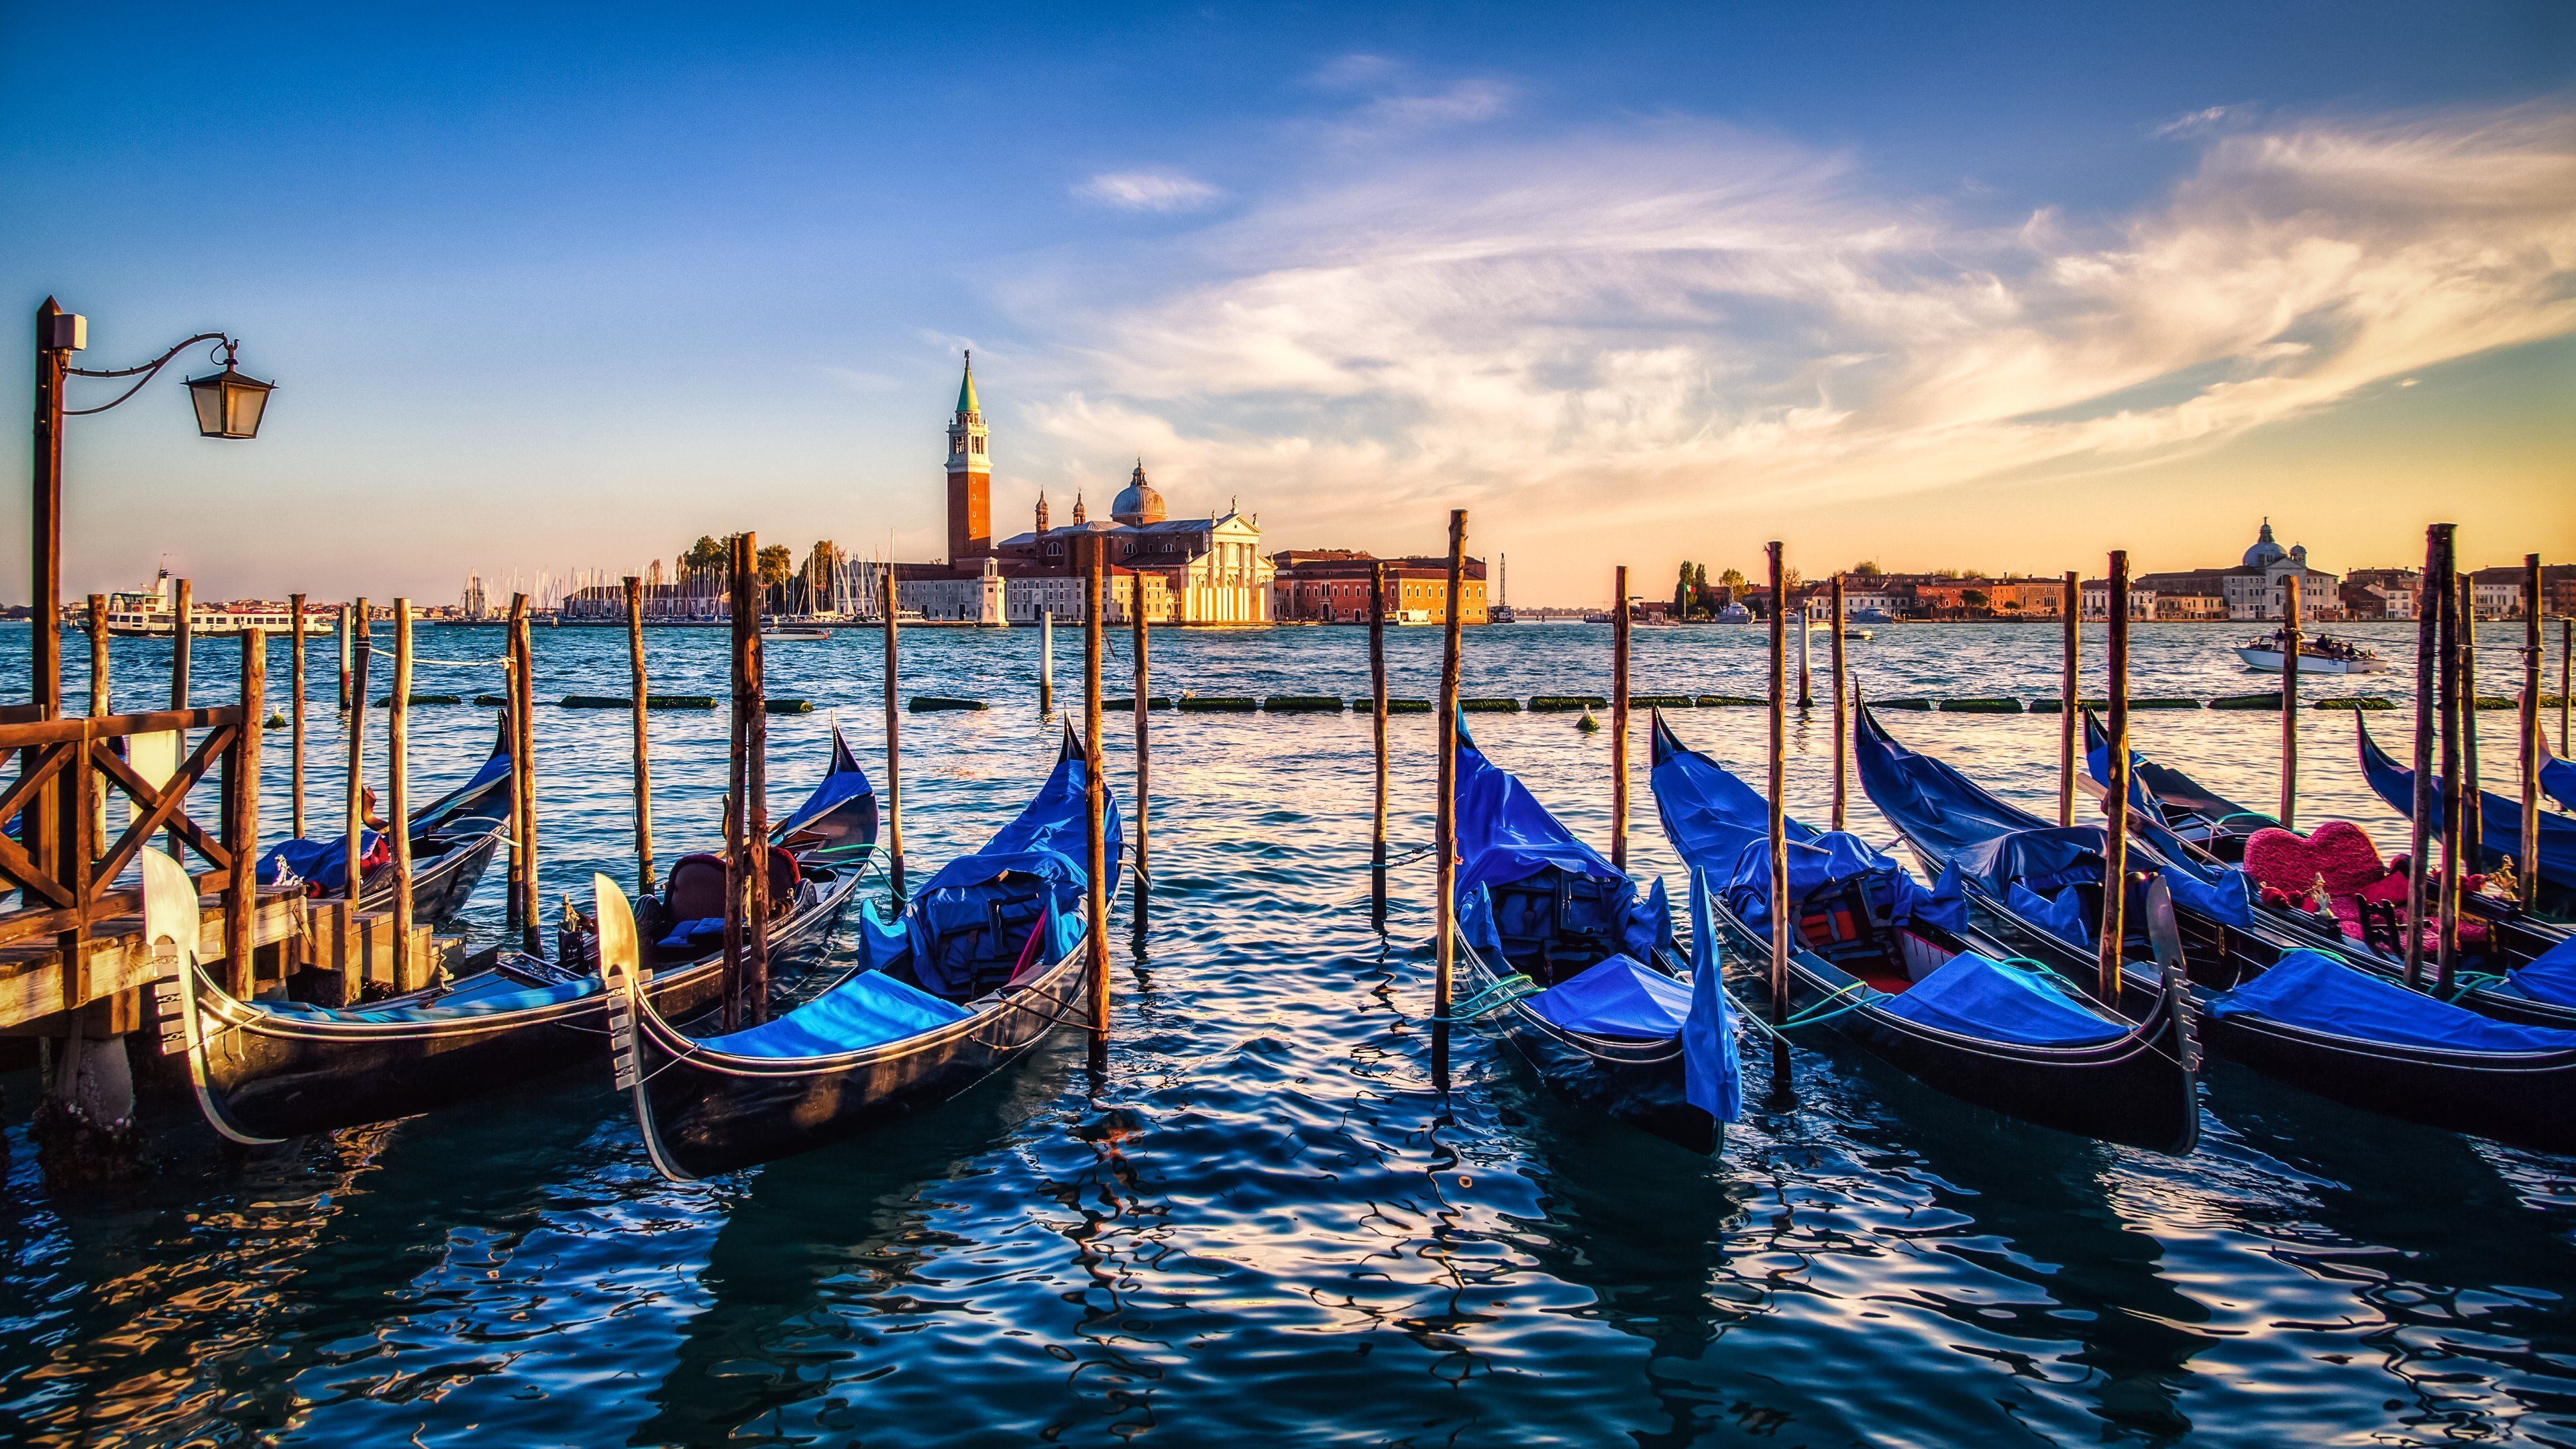 4k Ultra Venice HQ Definition Wallpapers | Venice in 2019 | Venice ...